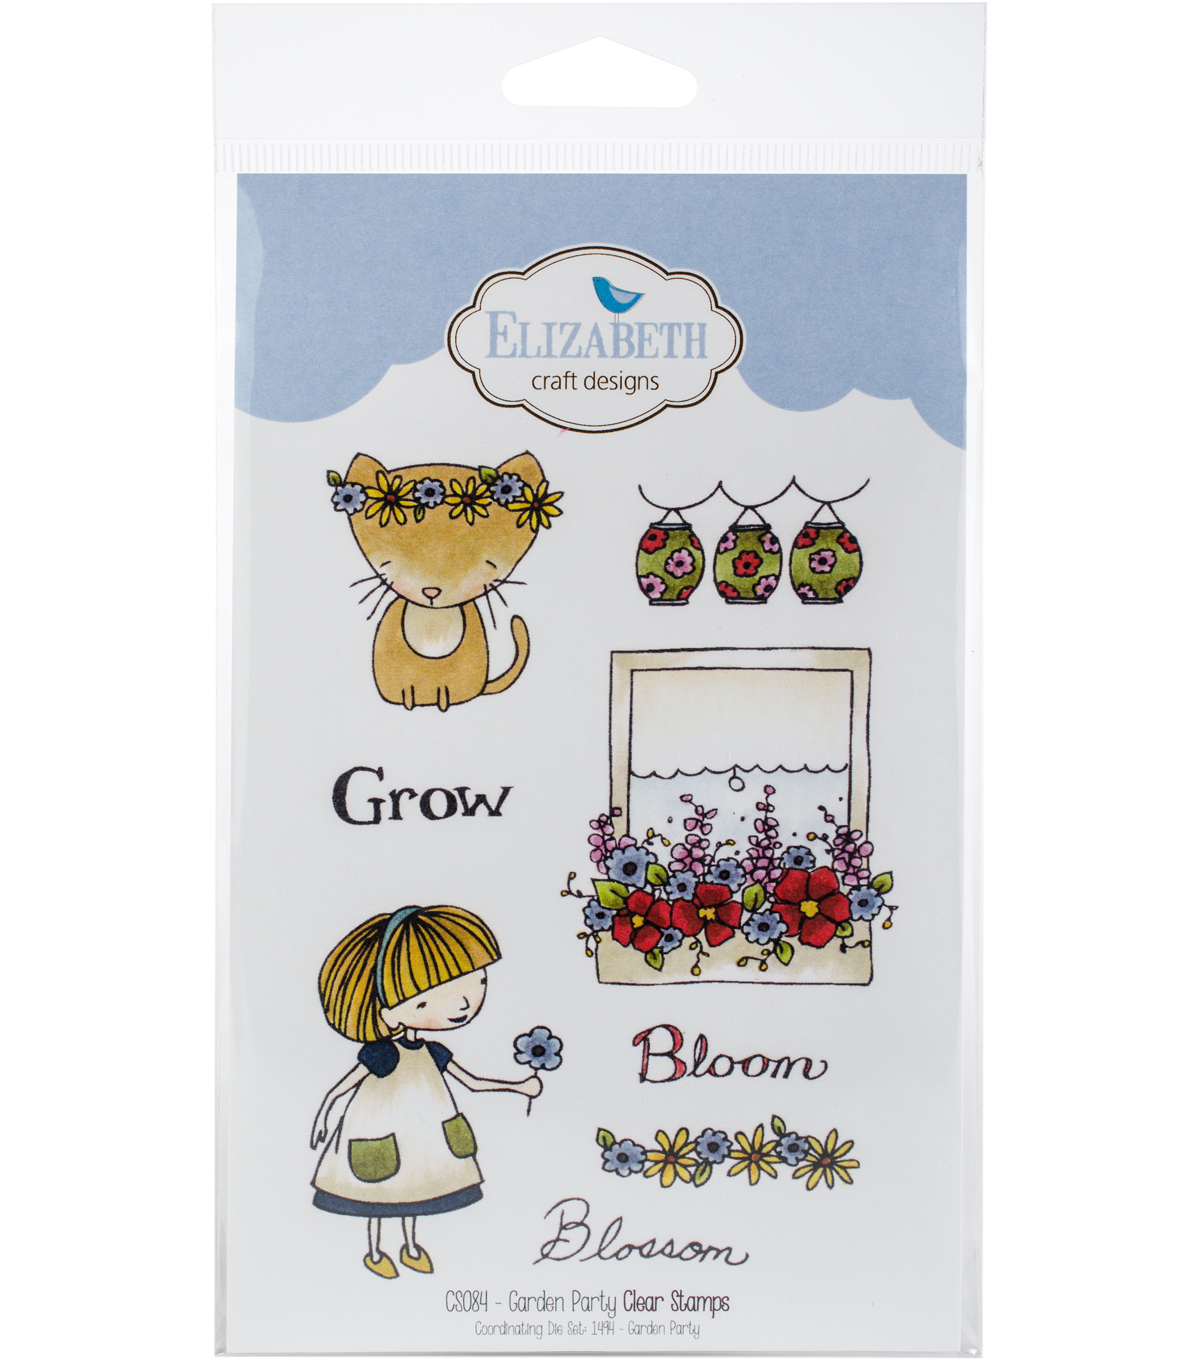 Elizabeth Craft Designs 8 pk Clear Stamps-Garden Party